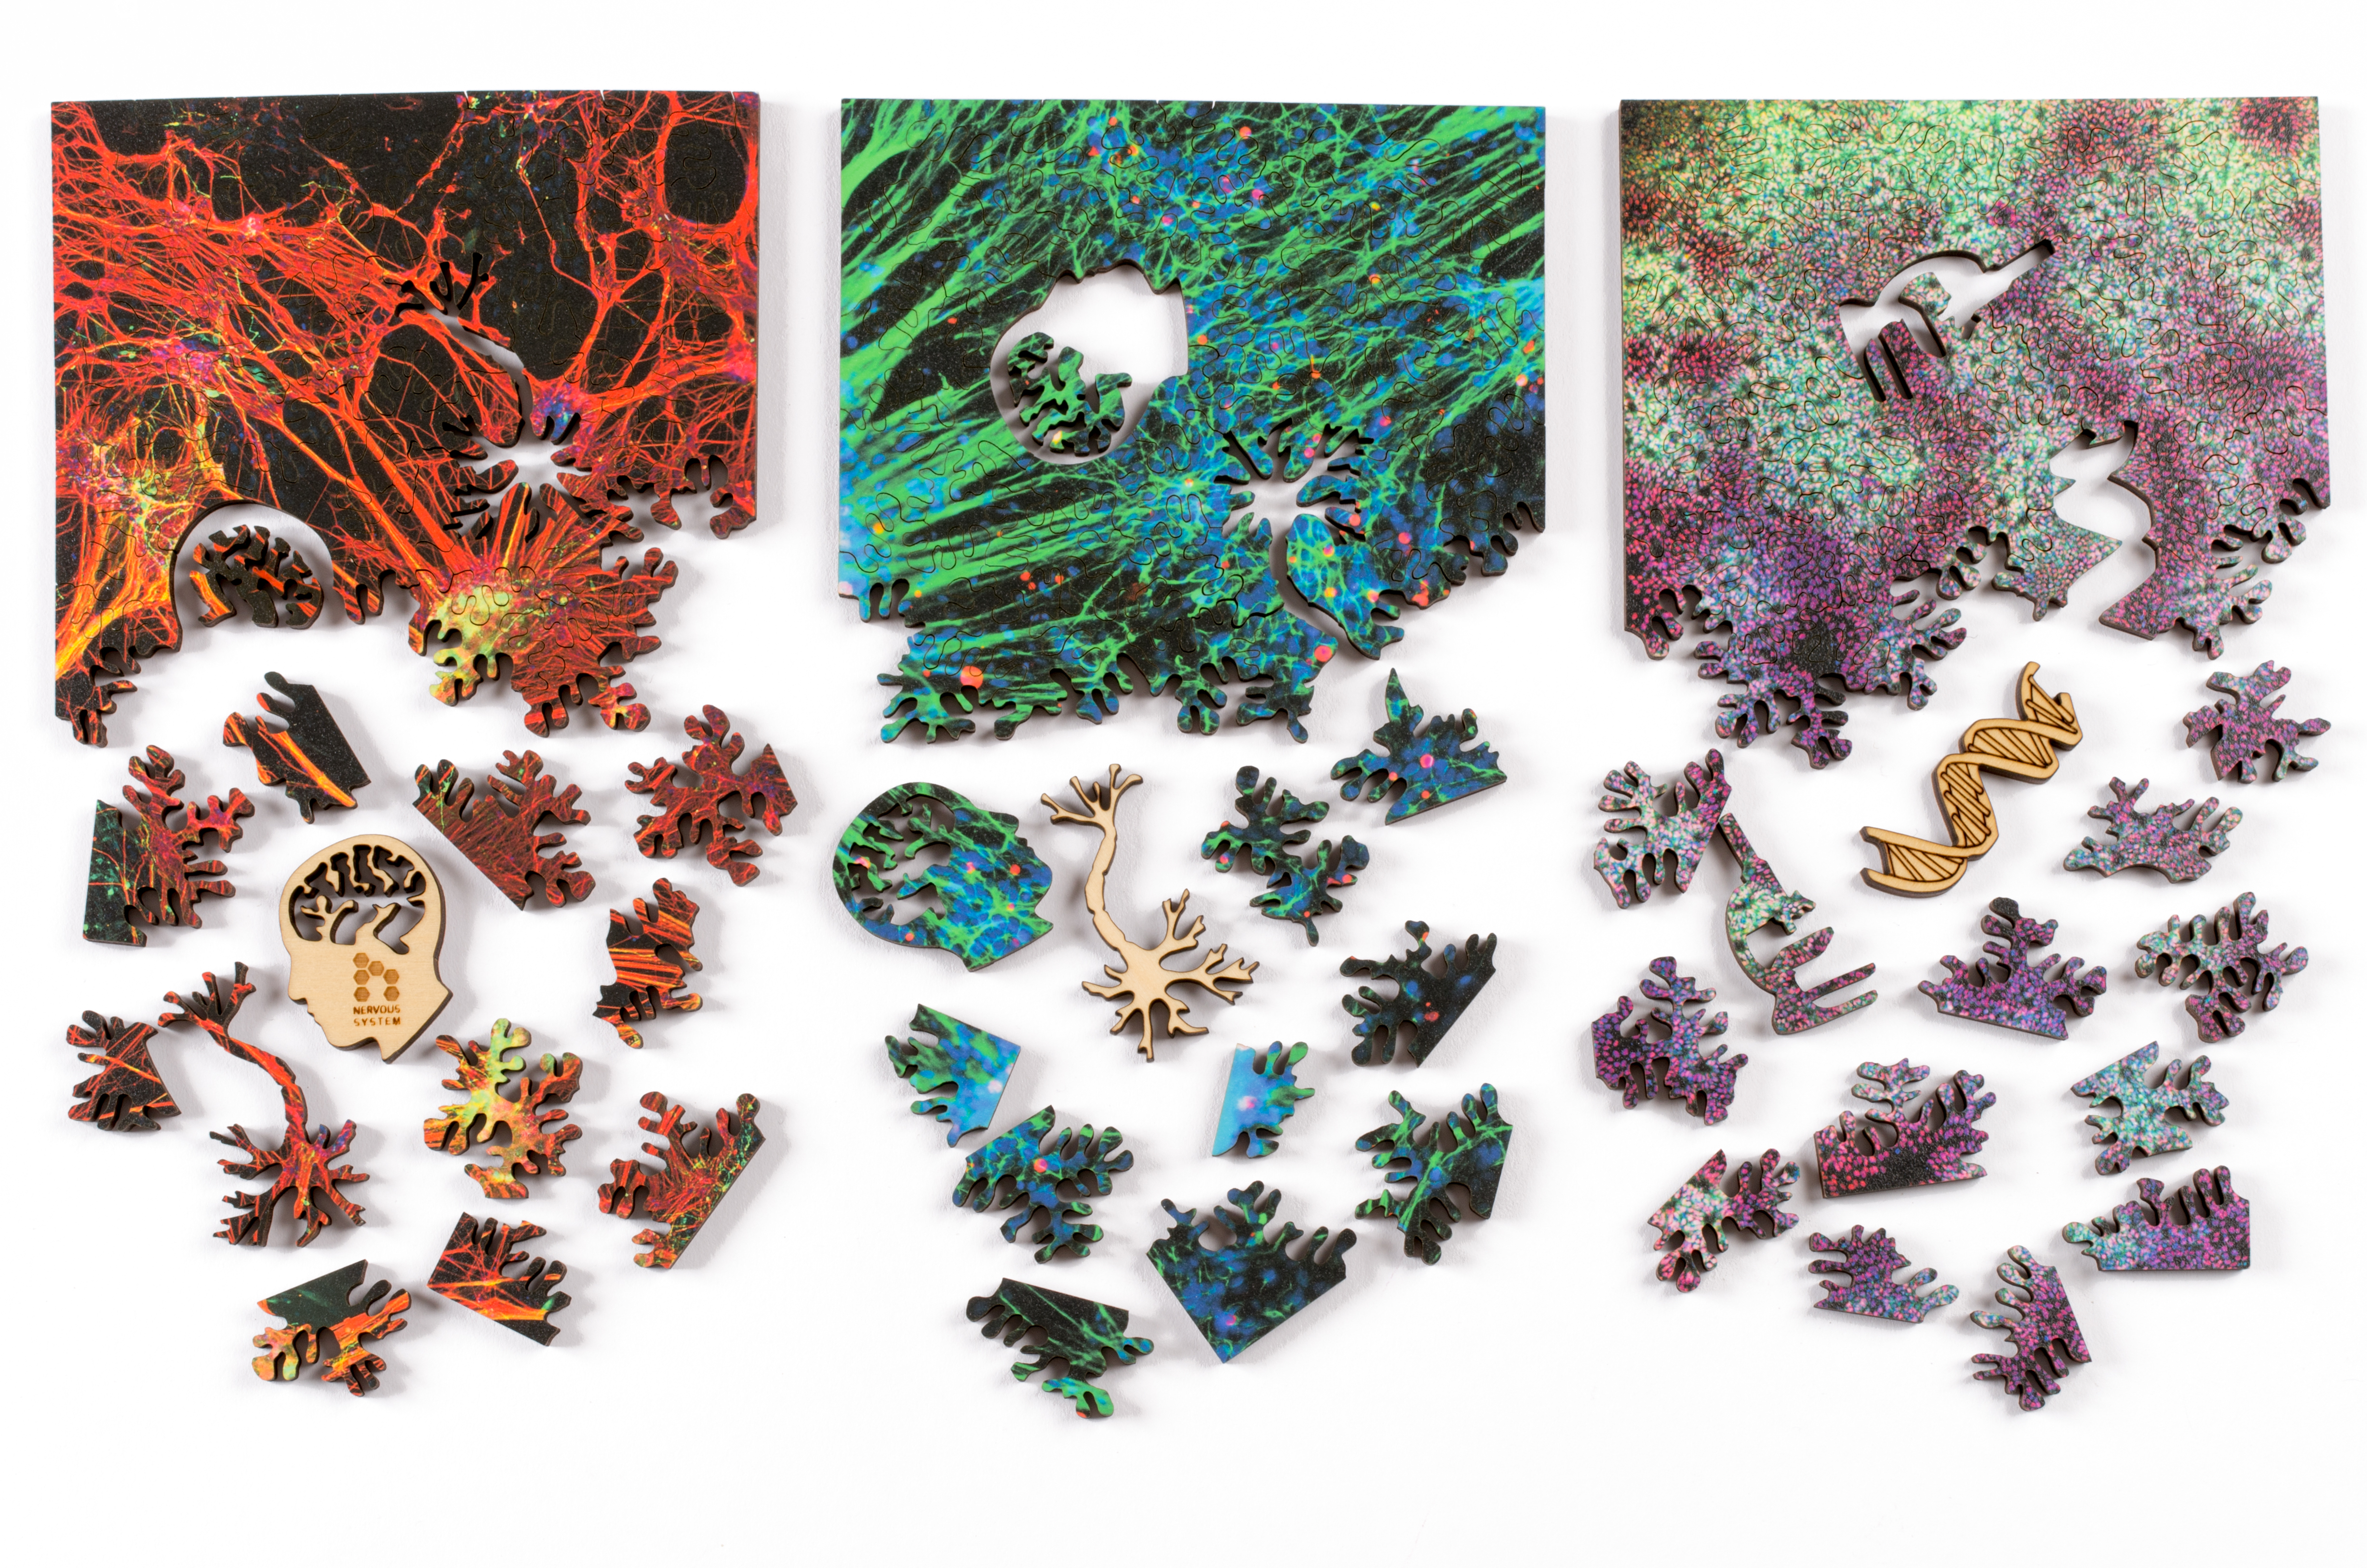 Naked picture jigsaw puzzles